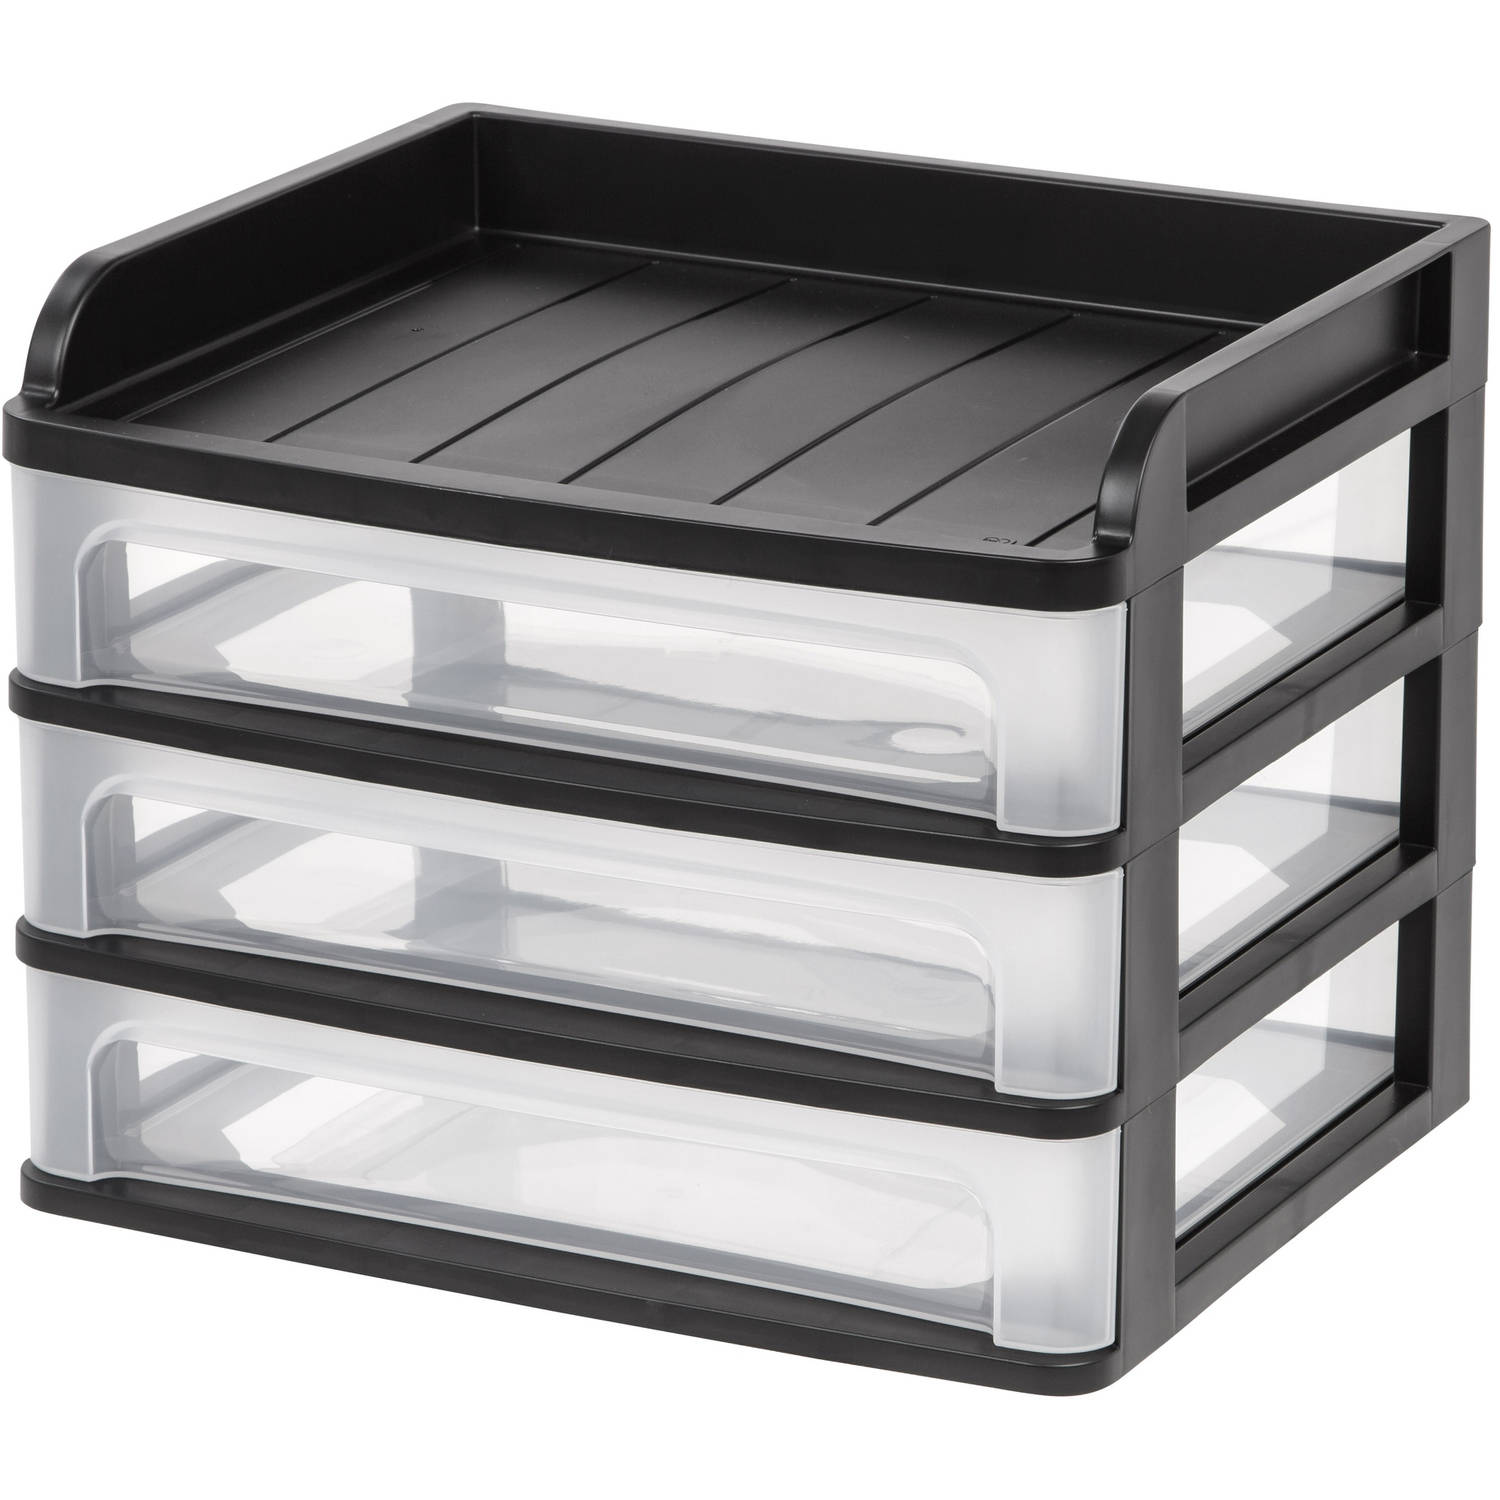 IRIS Desktop Drawer Organizer